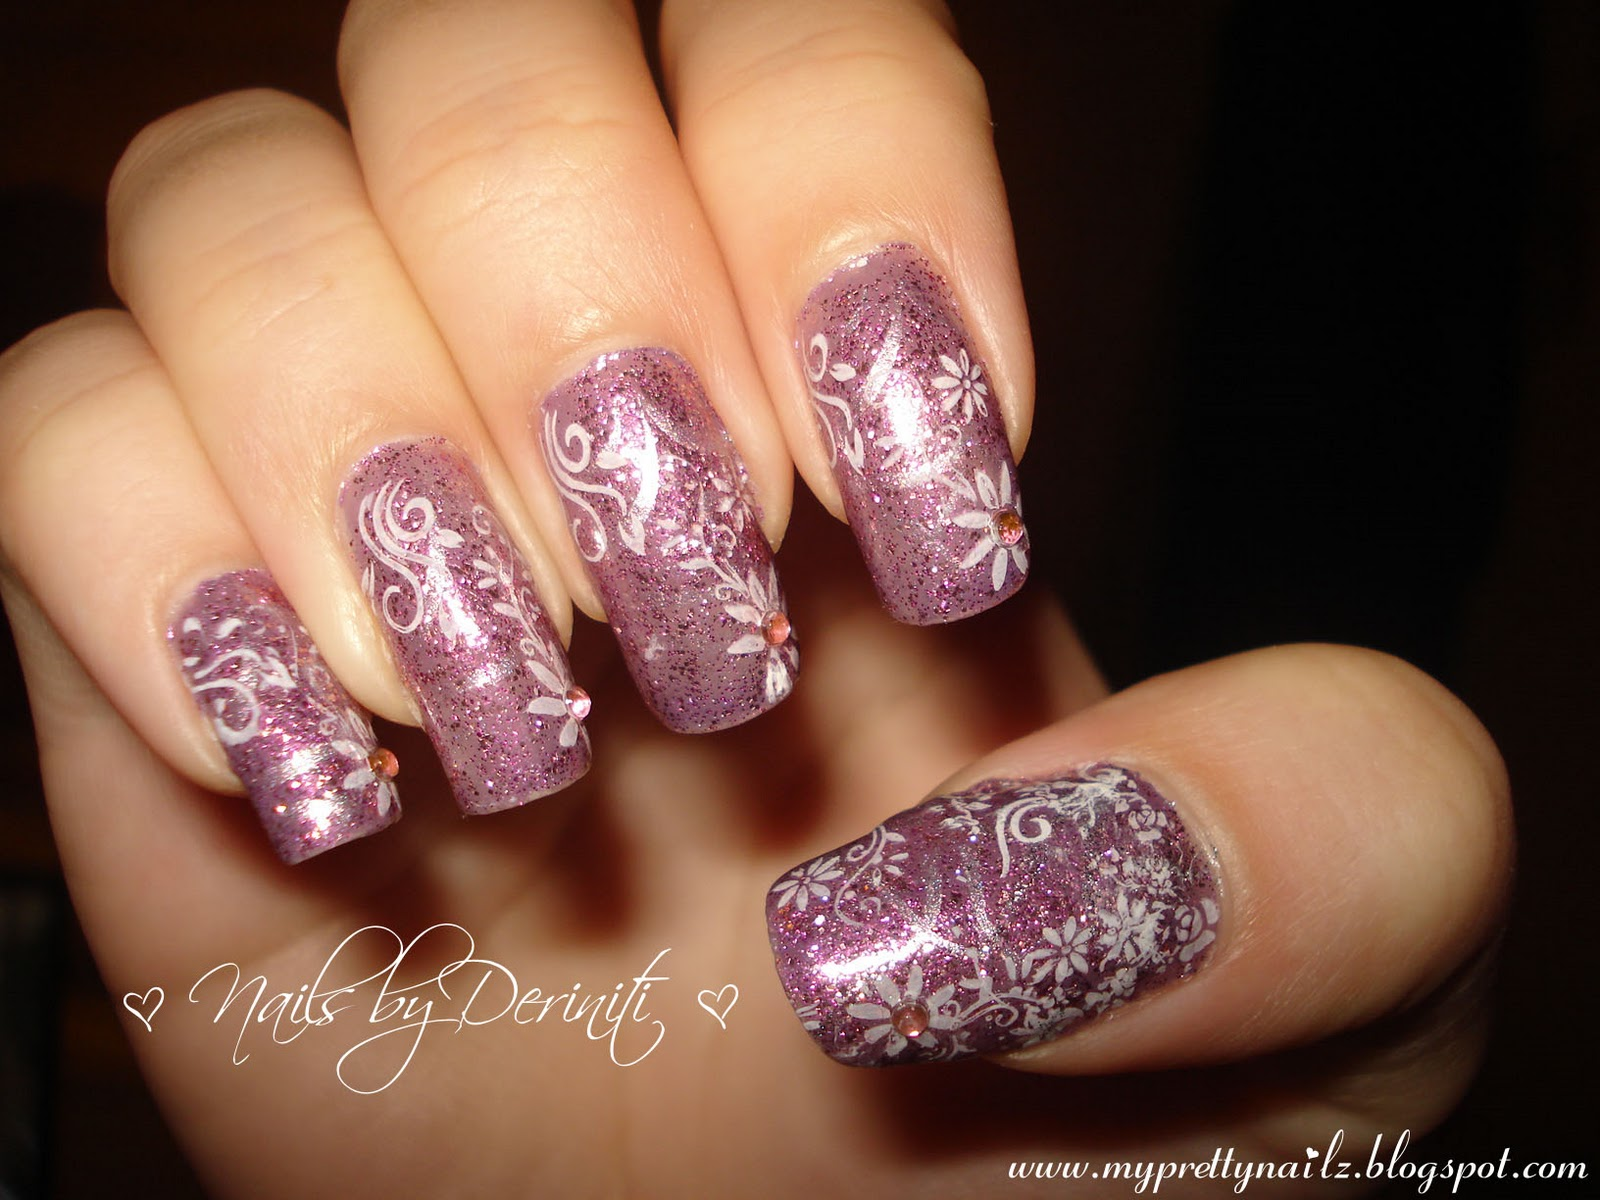 My pretty nailz glittery purple nails with flowers nail art glittery purple nails with flowers nail art design purple nails purple and white nail art floral nail art flower nail art girly nail art prinsesfo Images